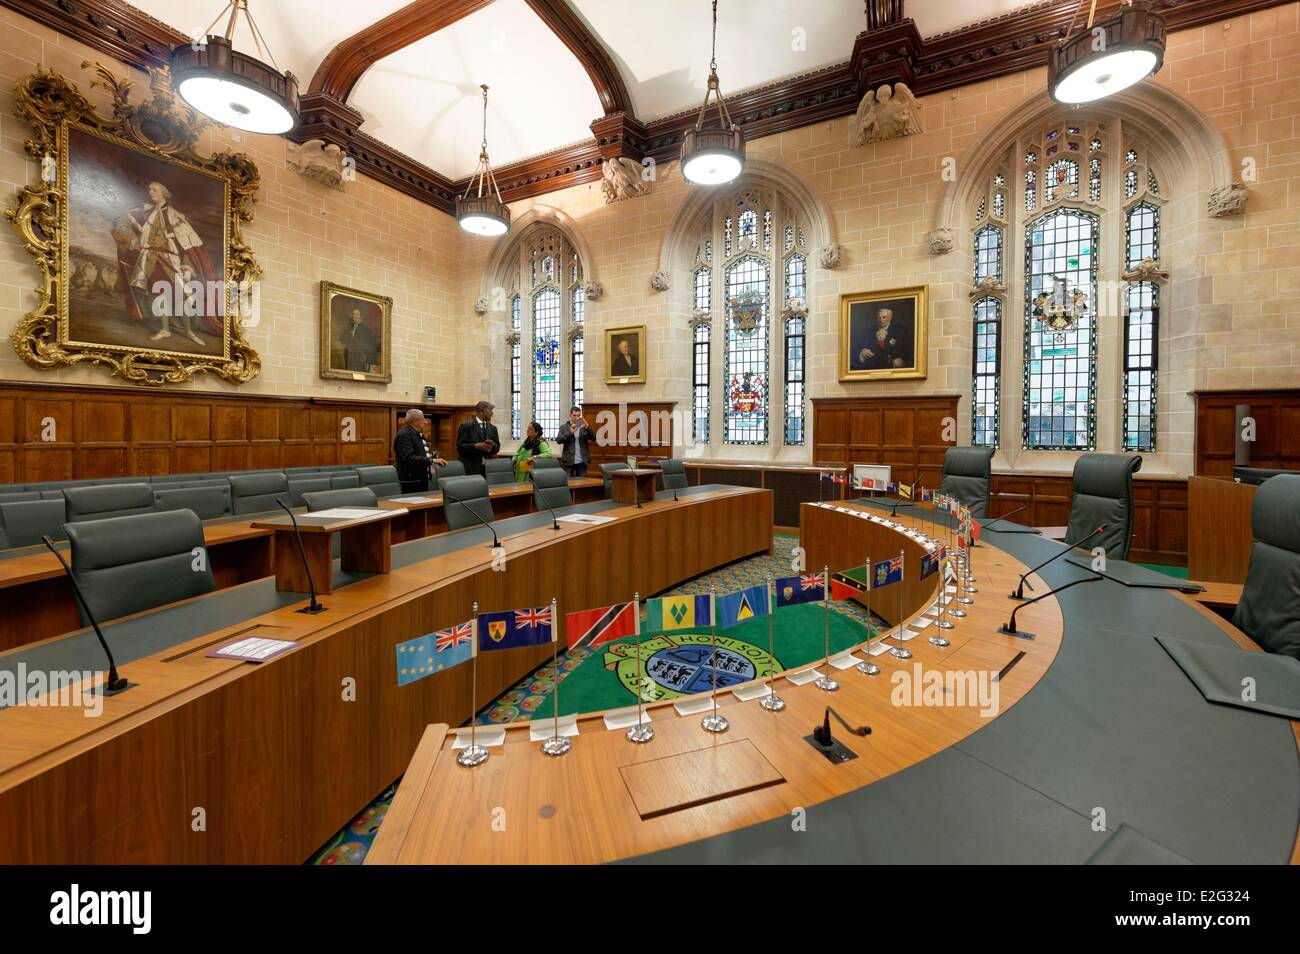 how courts in the united kingdom The united kingdom of great britain and northern ireland (the united kingdom or the uk) is a constitutional monarchy comprising much of the british isles.